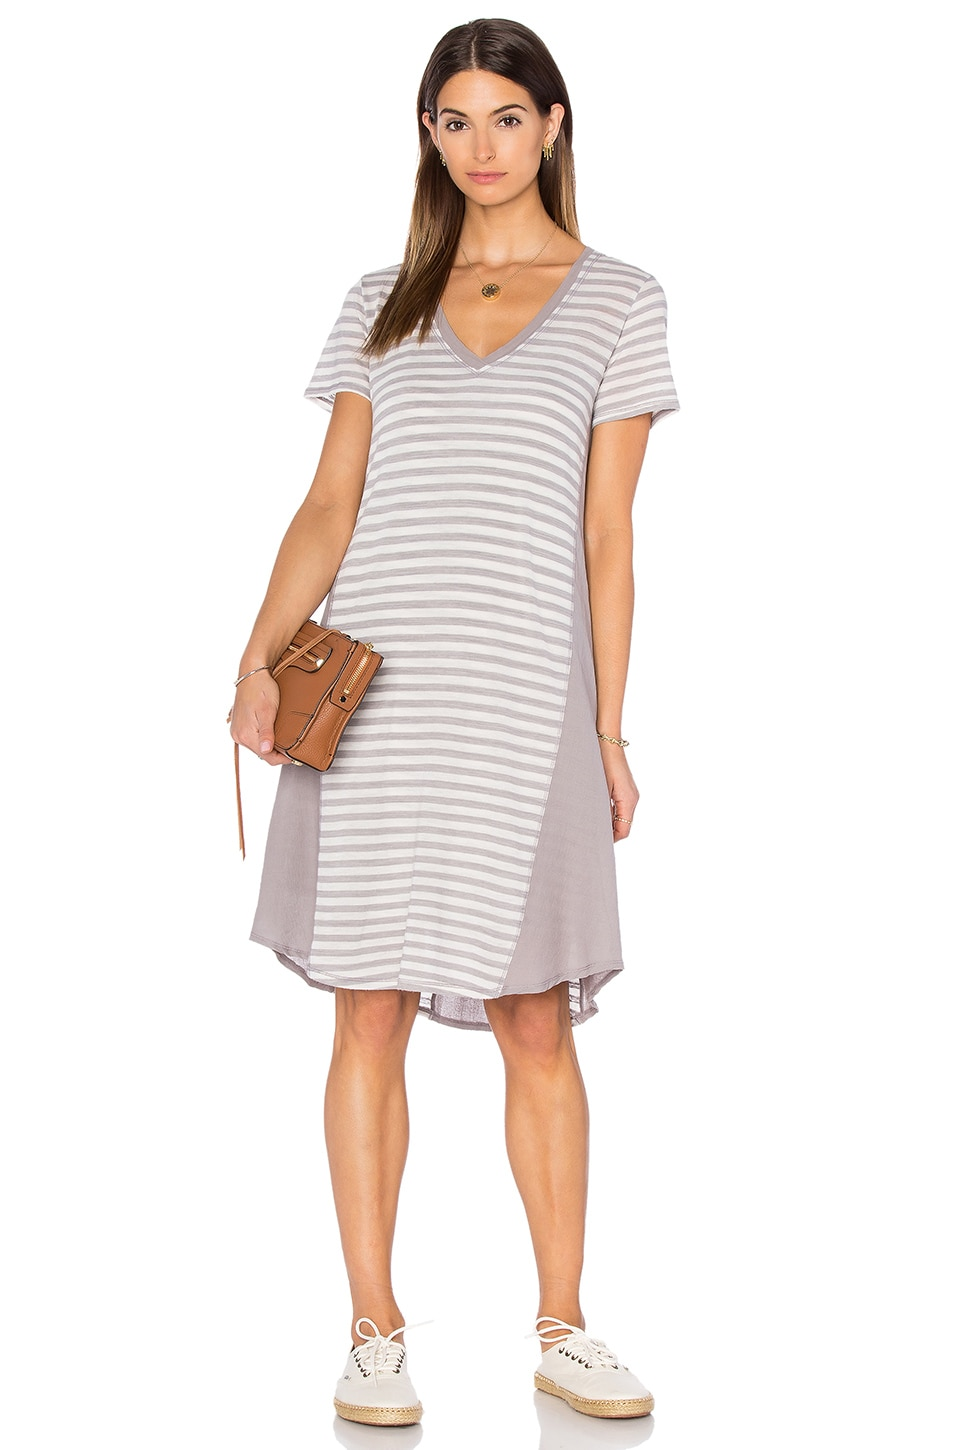 Panel Tee Dress by Heather